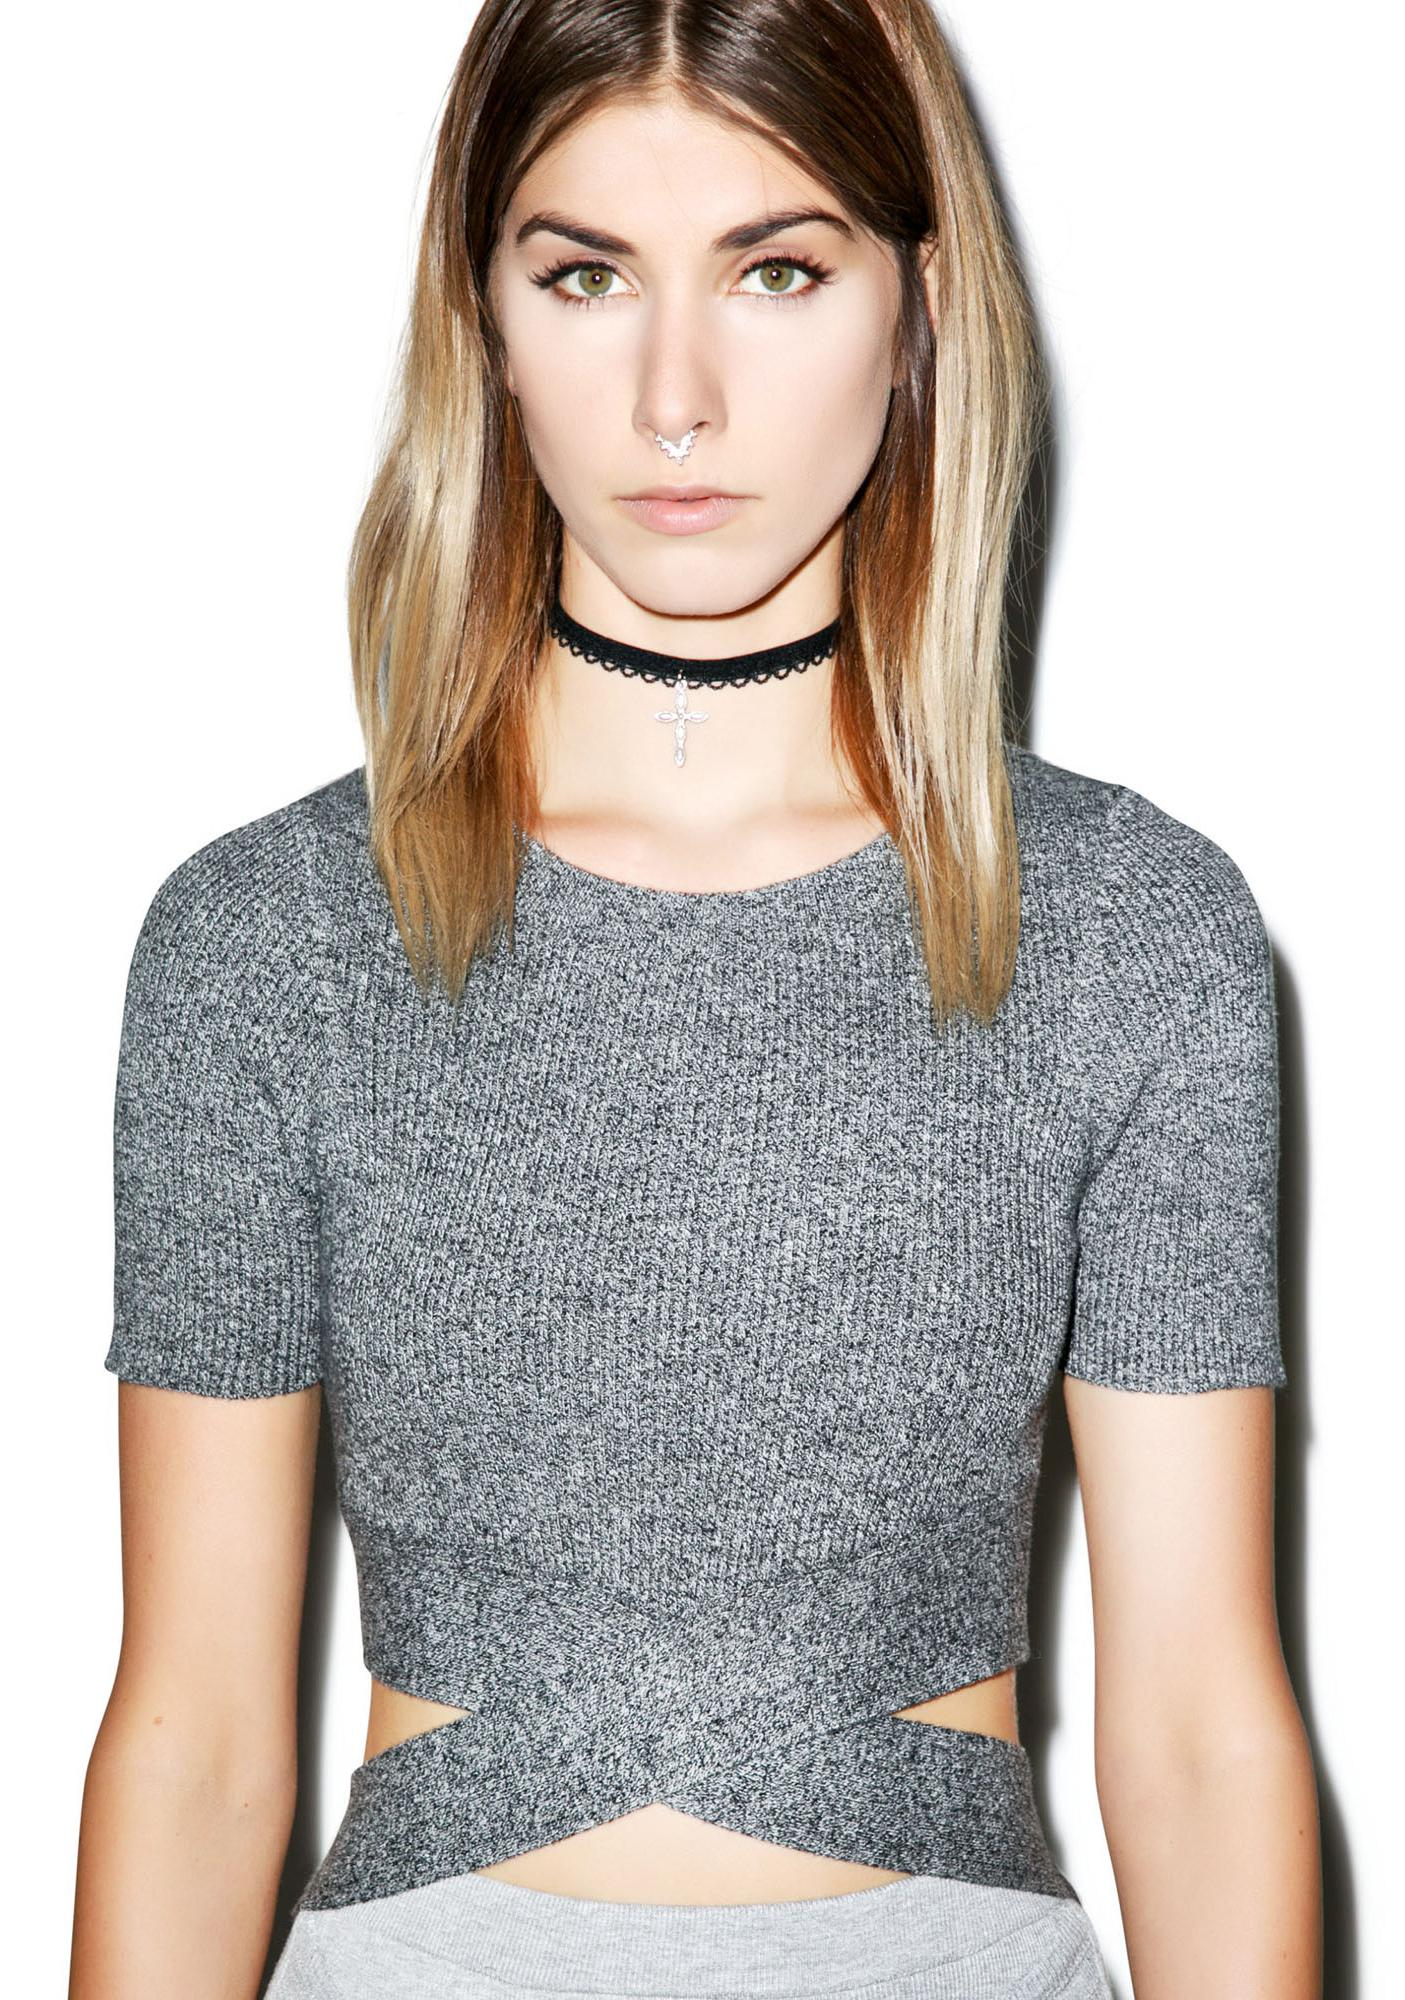 The Siren Knit Top